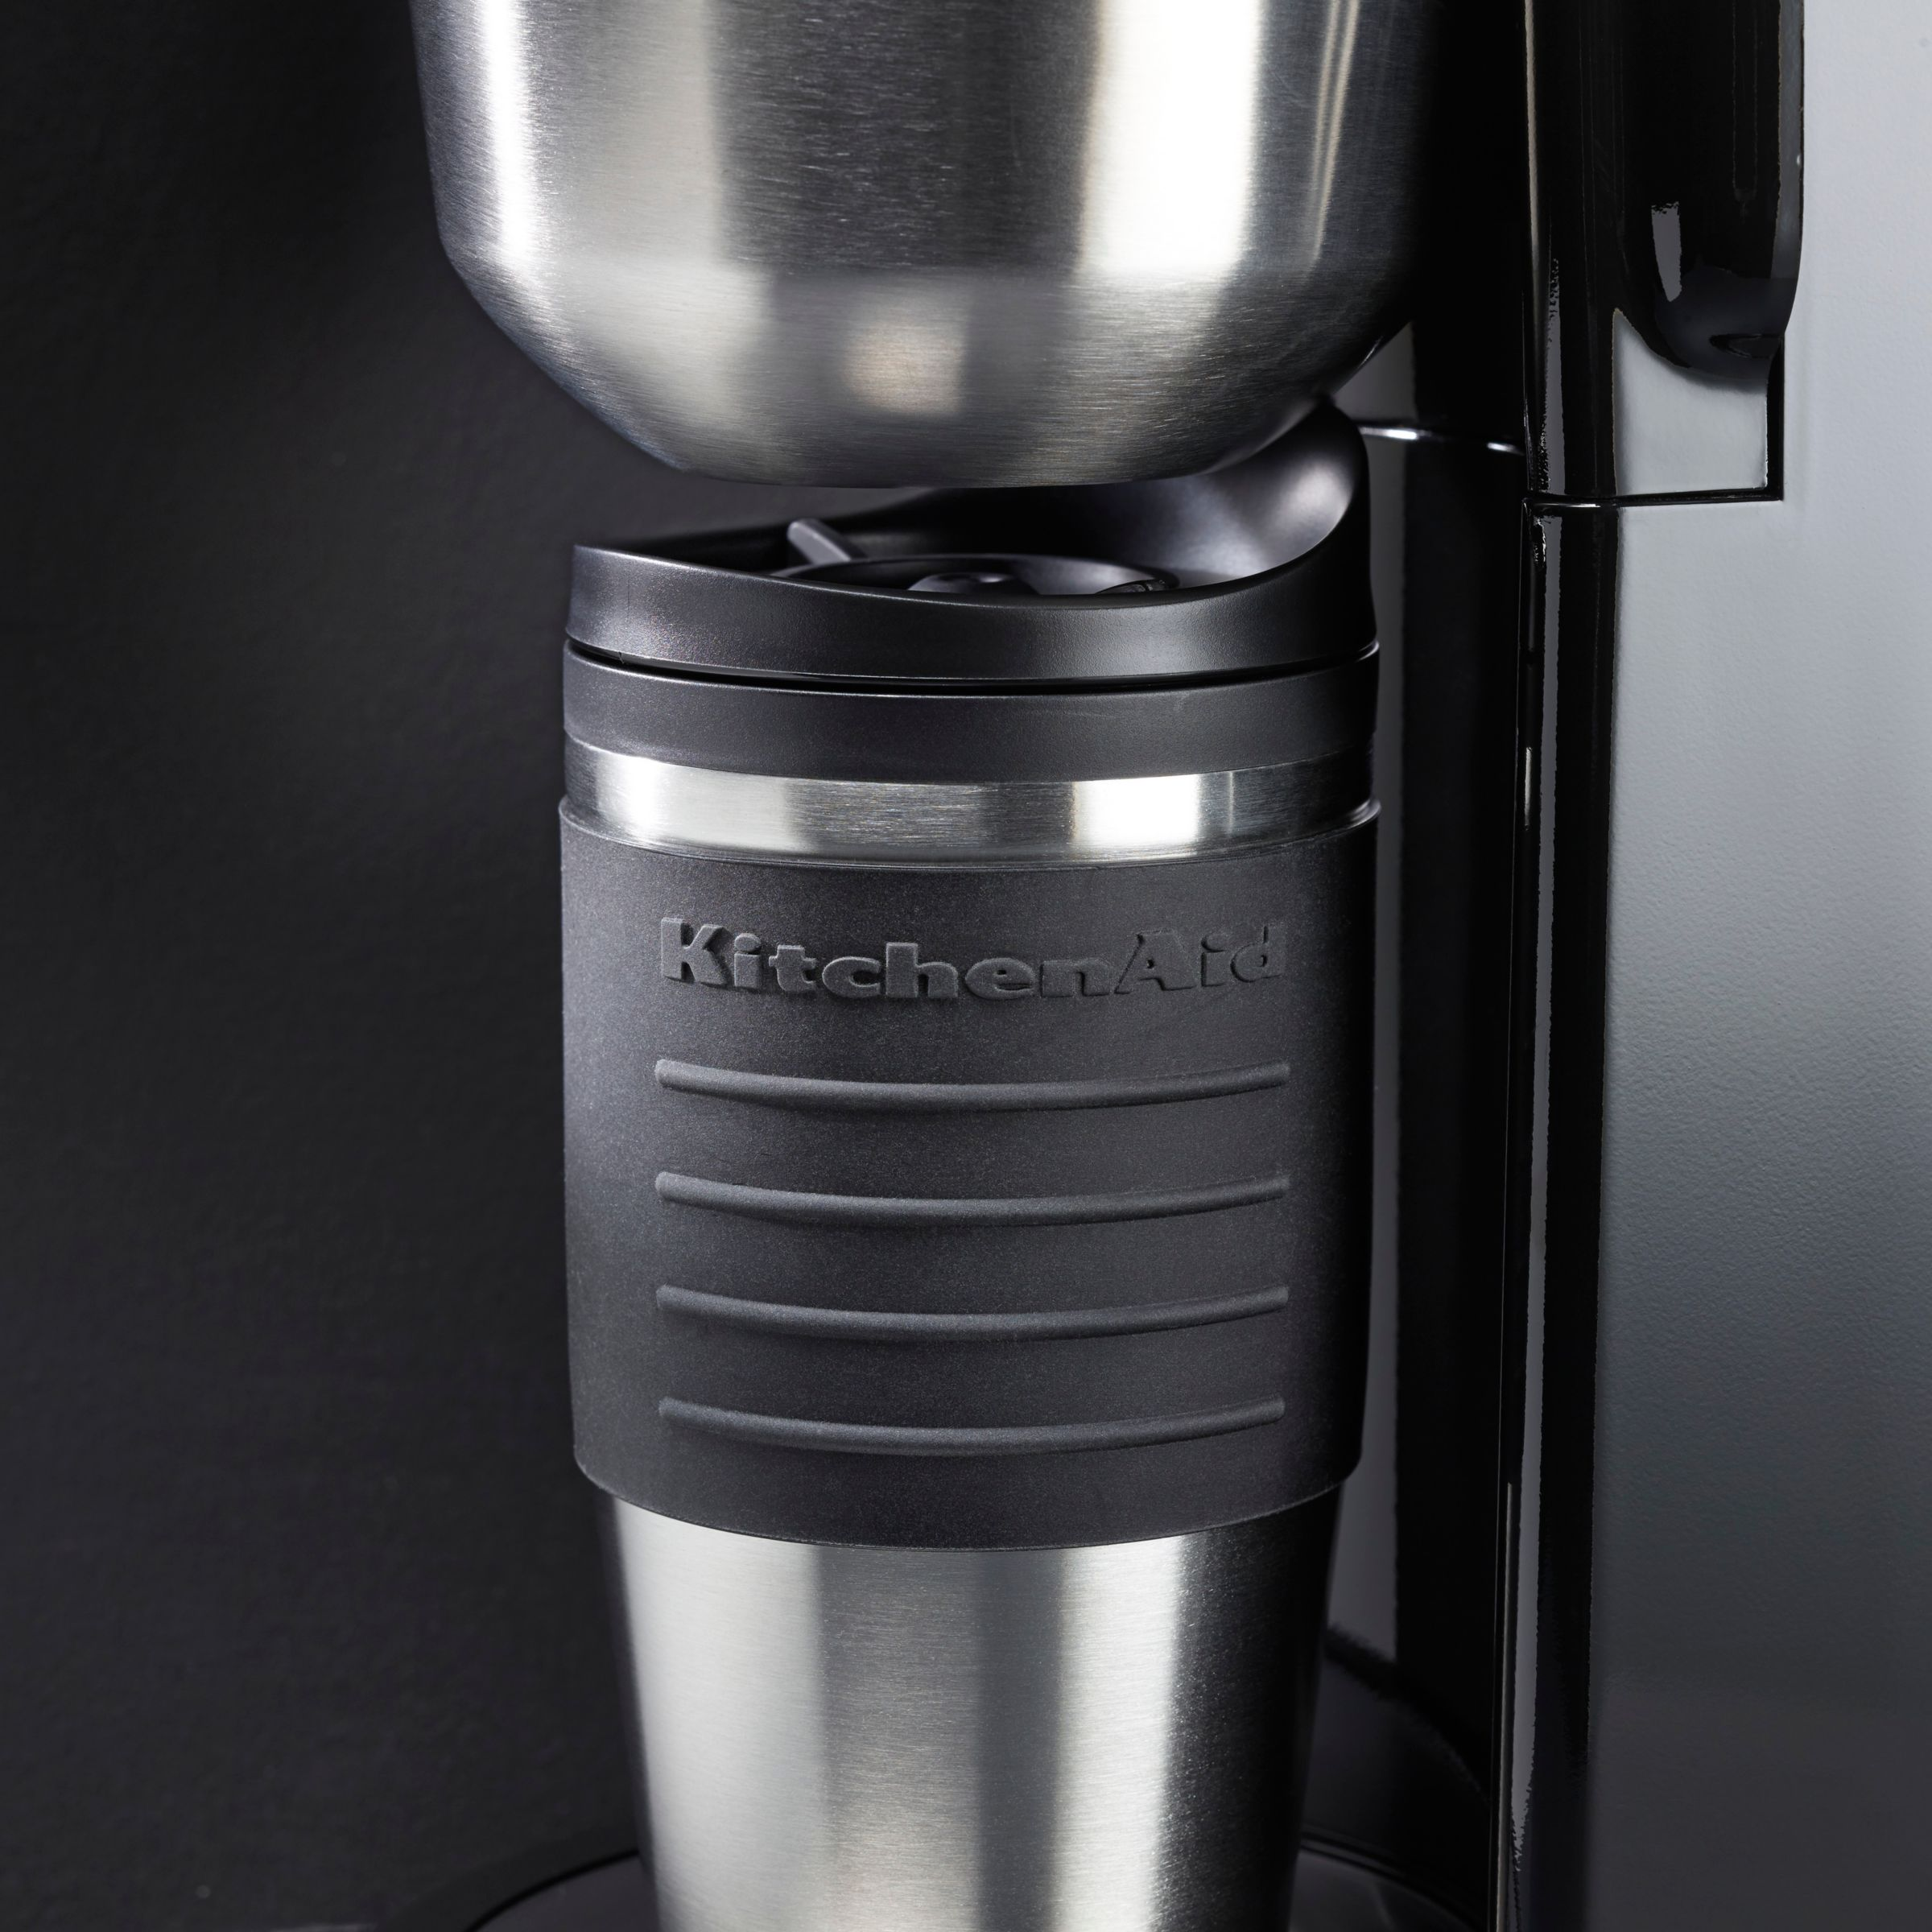 Buy KitchenAid Personal Filter Coffee Maker John Lewis